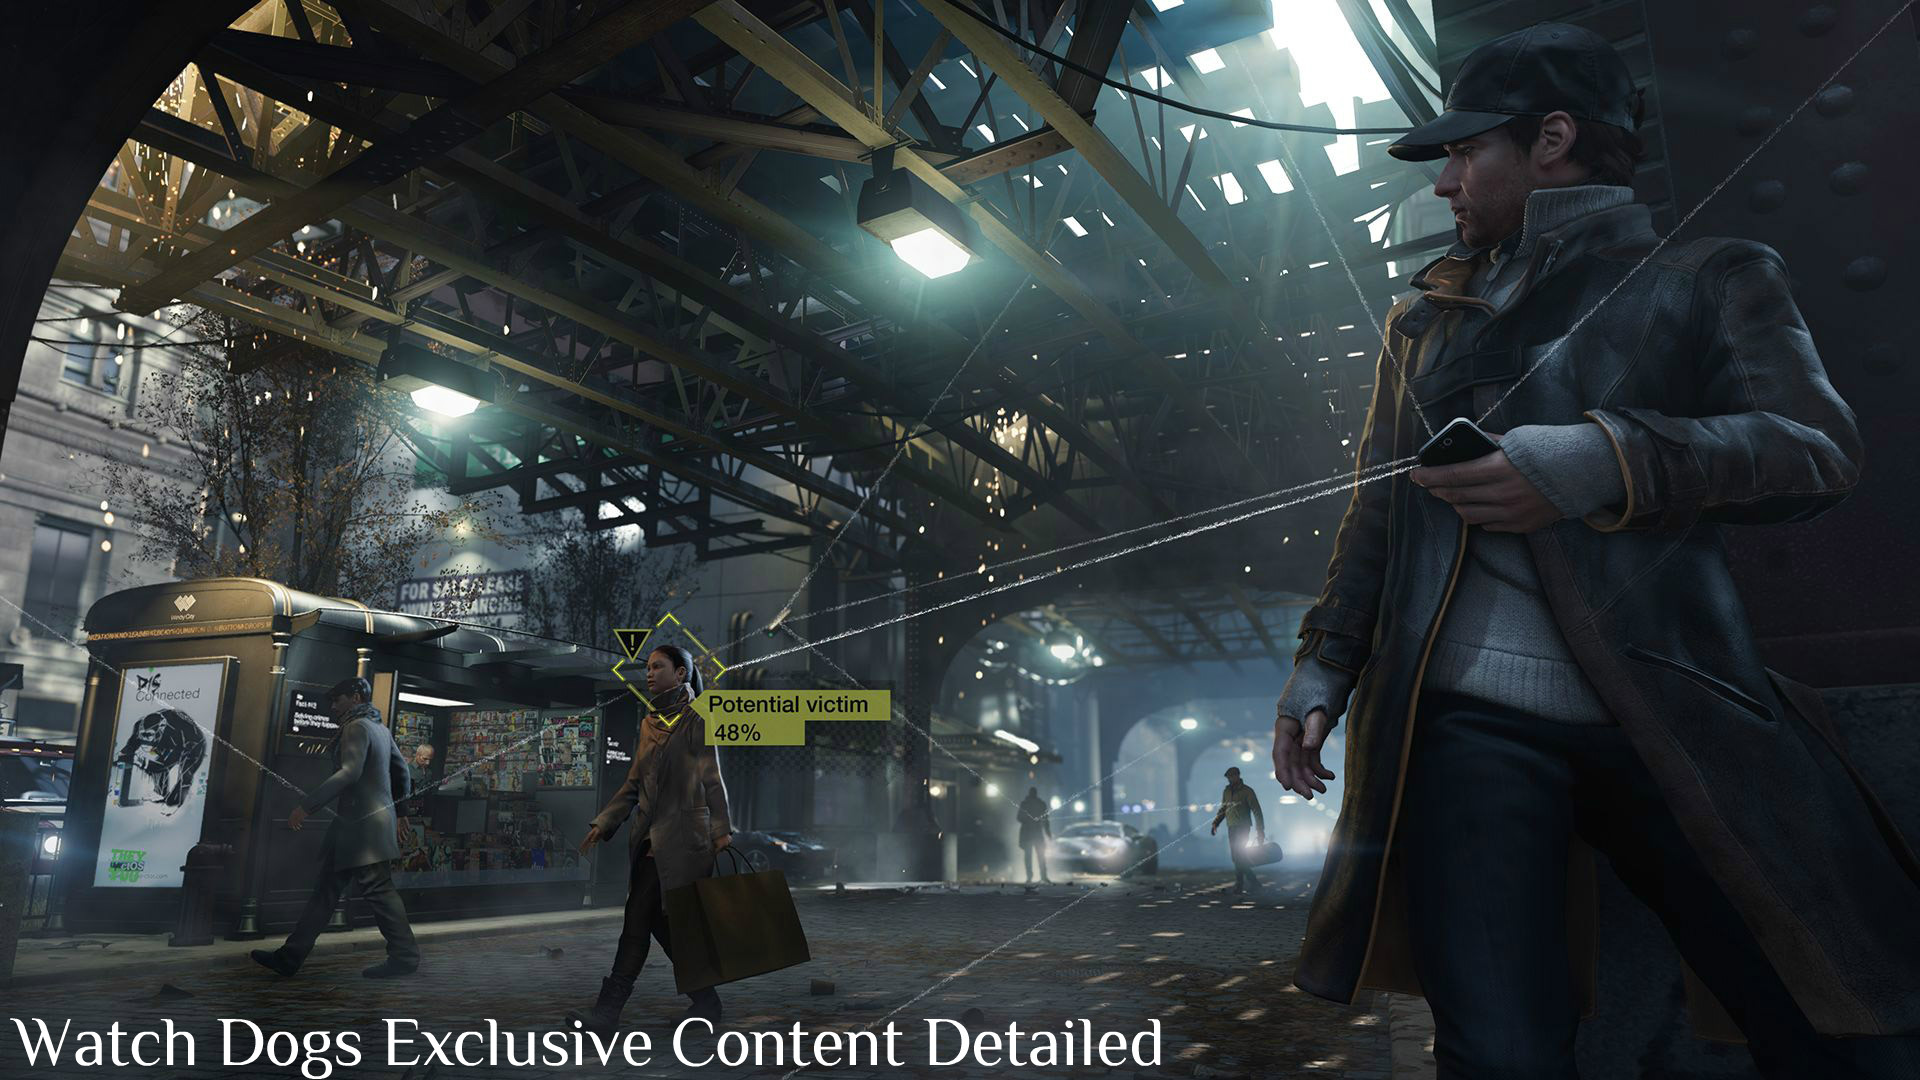 Watch Dogs Exclusive Content